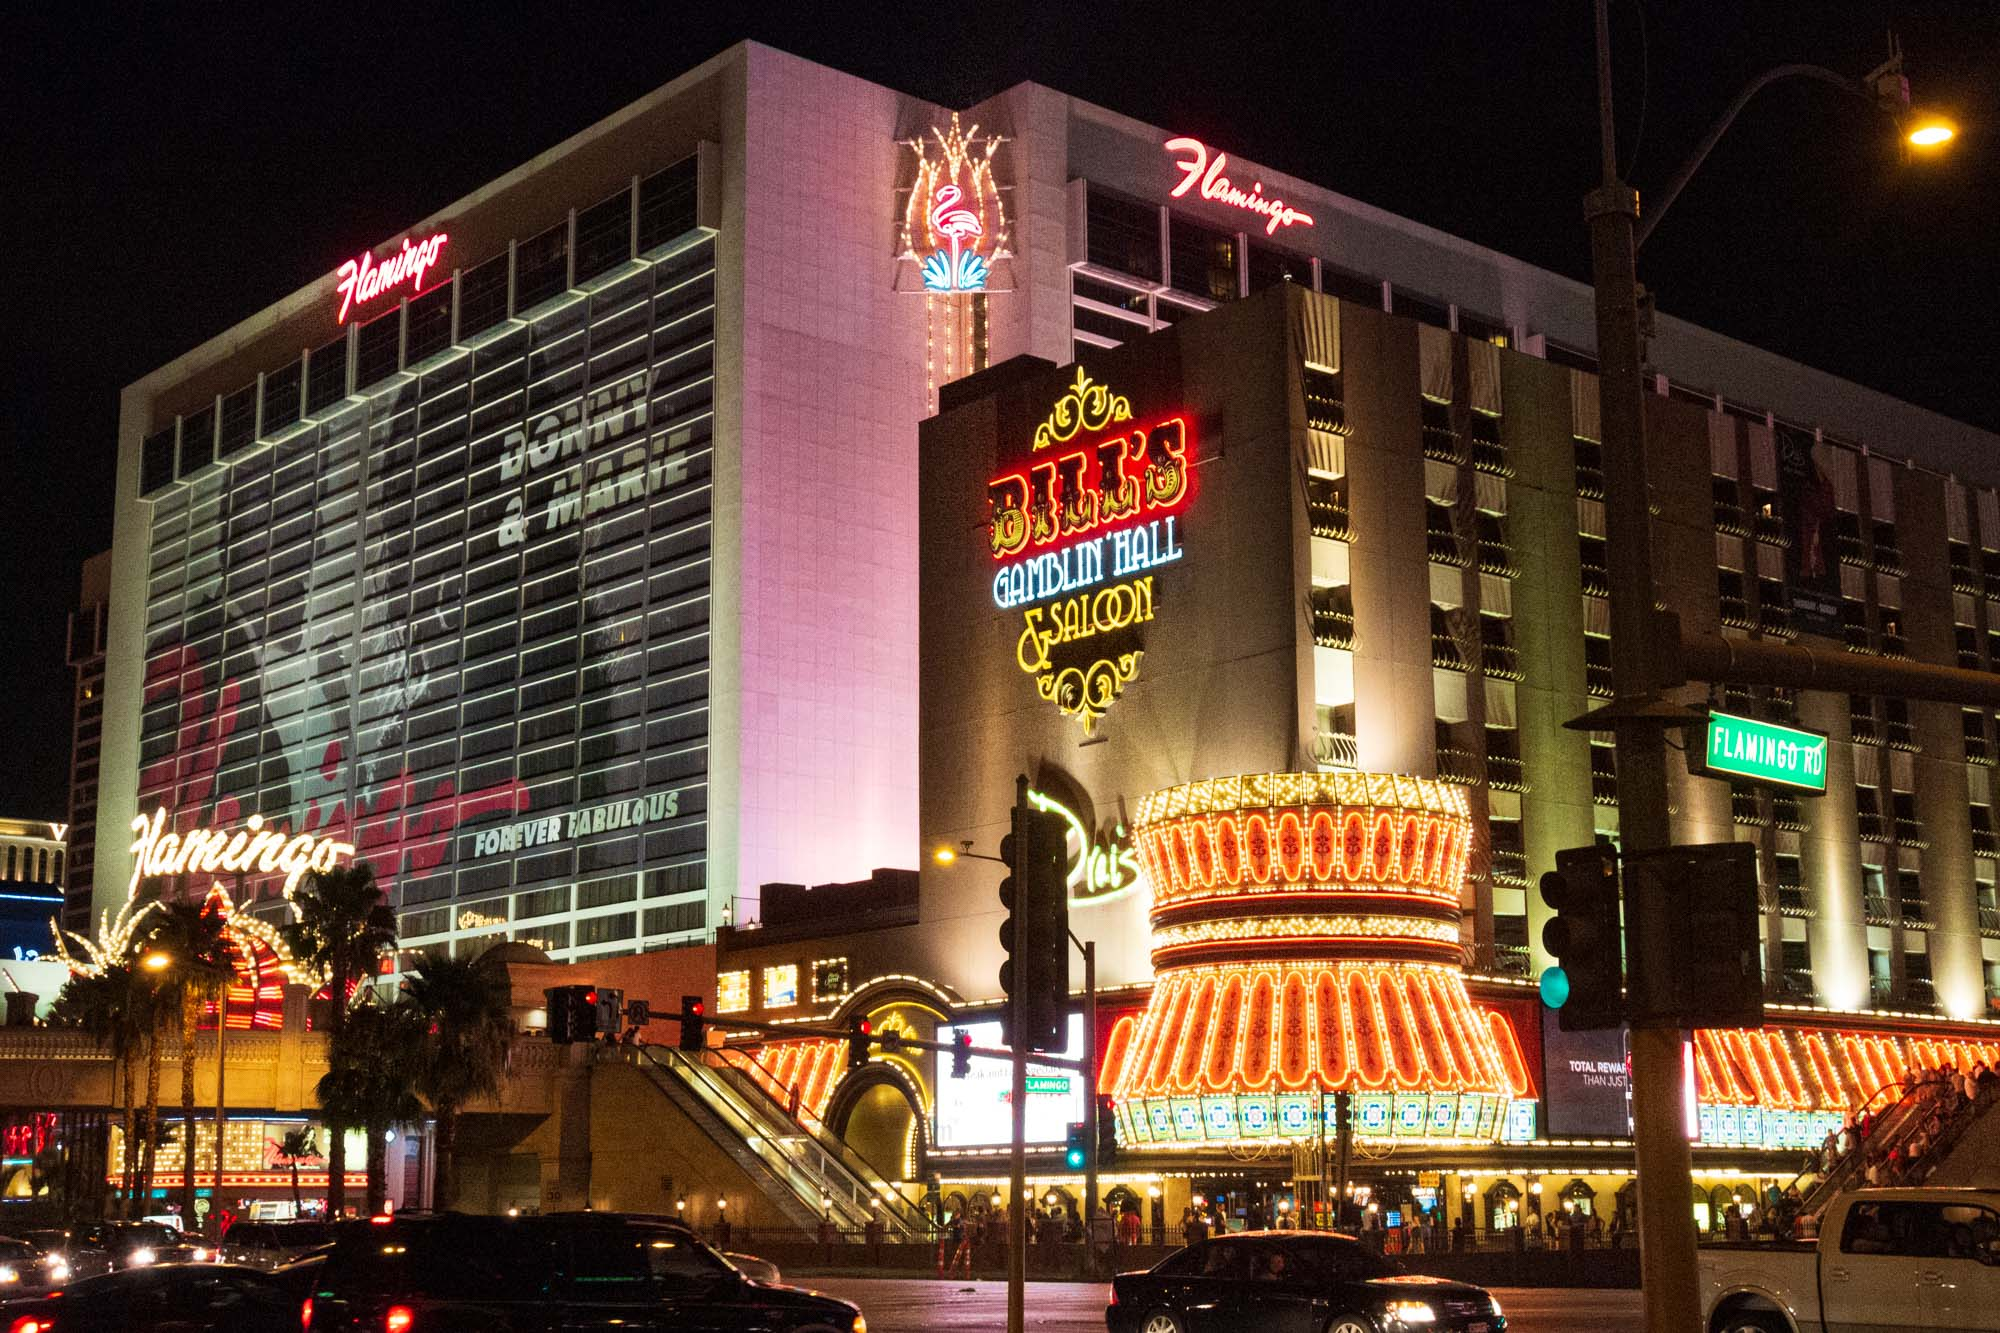 a hotel and casino on the Las Vegas strip